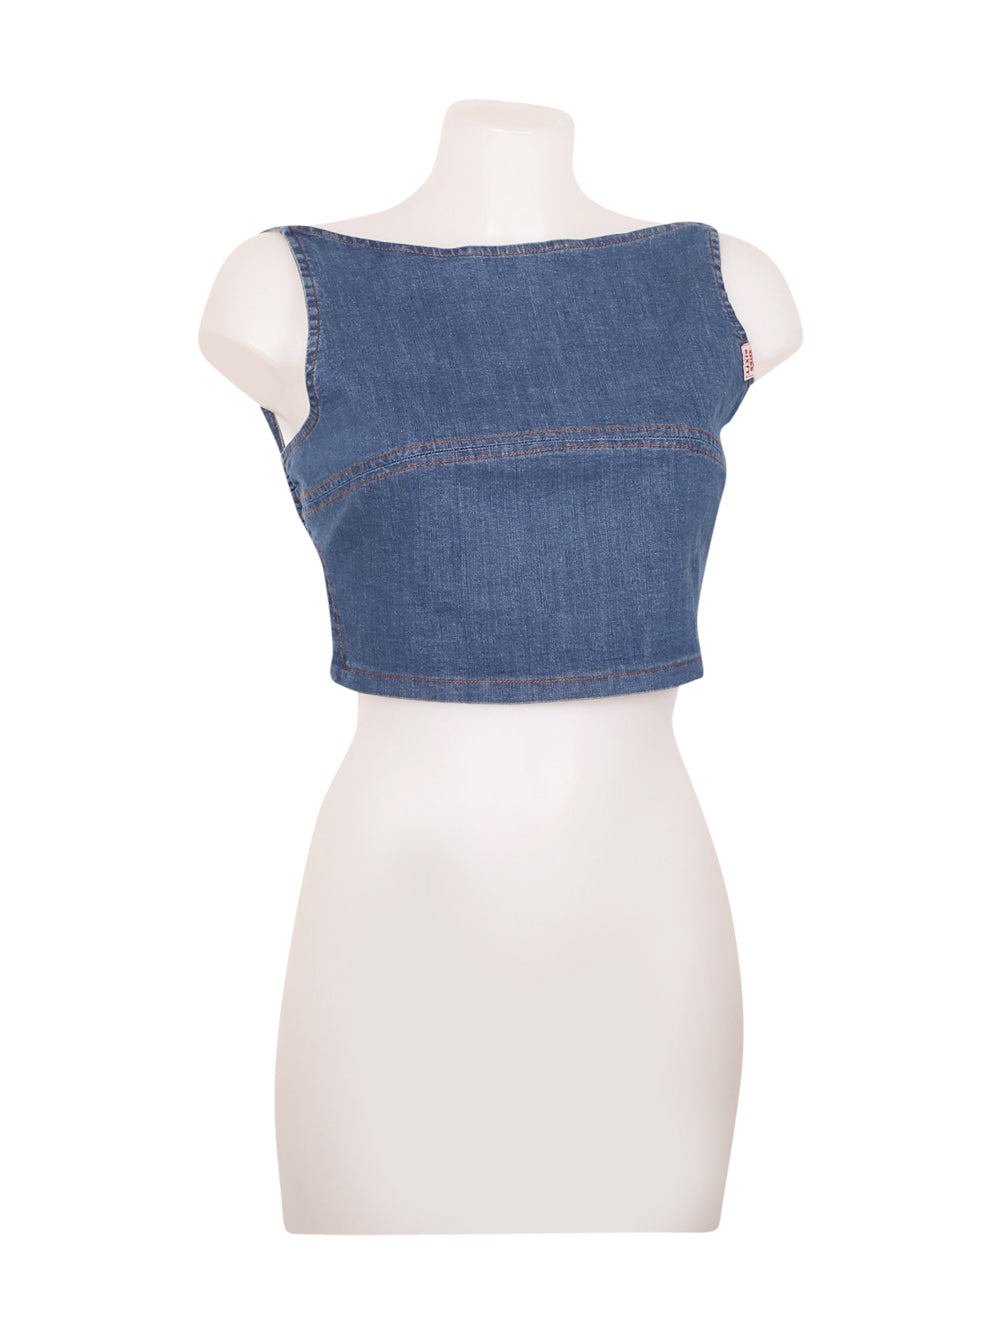 Front photo of Preloved Miss Sixty Blue Woman's sleeveless top - size 8/S